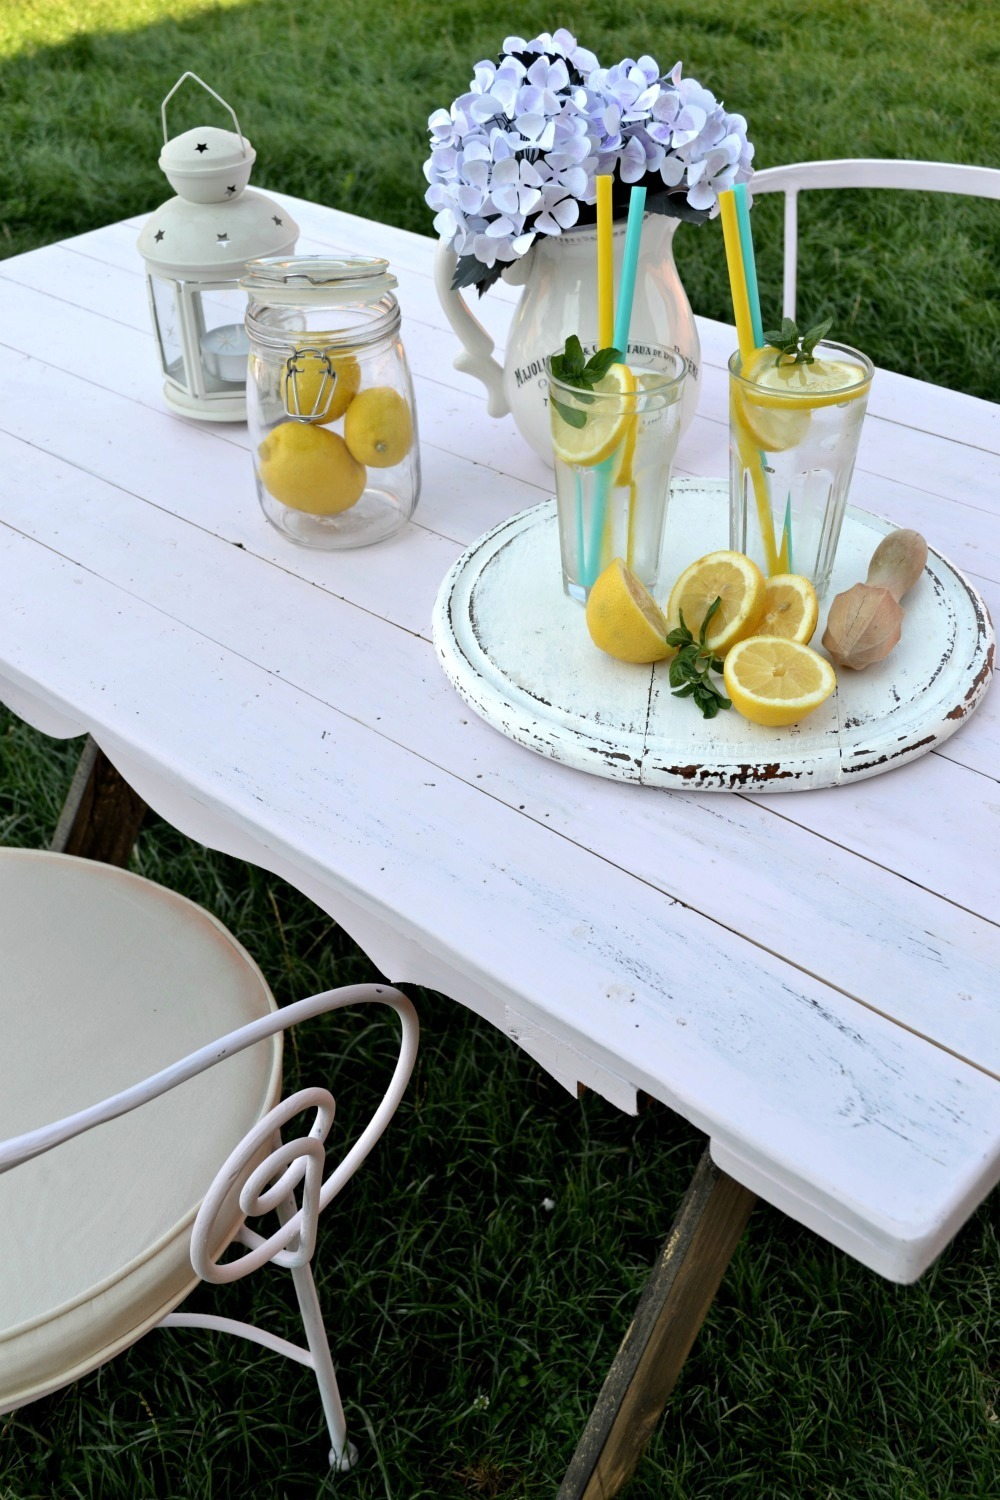 DIY farmhouse table for two - learn how to make a X leg farmhouse table from scratch, how to paint it and distress it, but also add a little bit of chicness to make it special